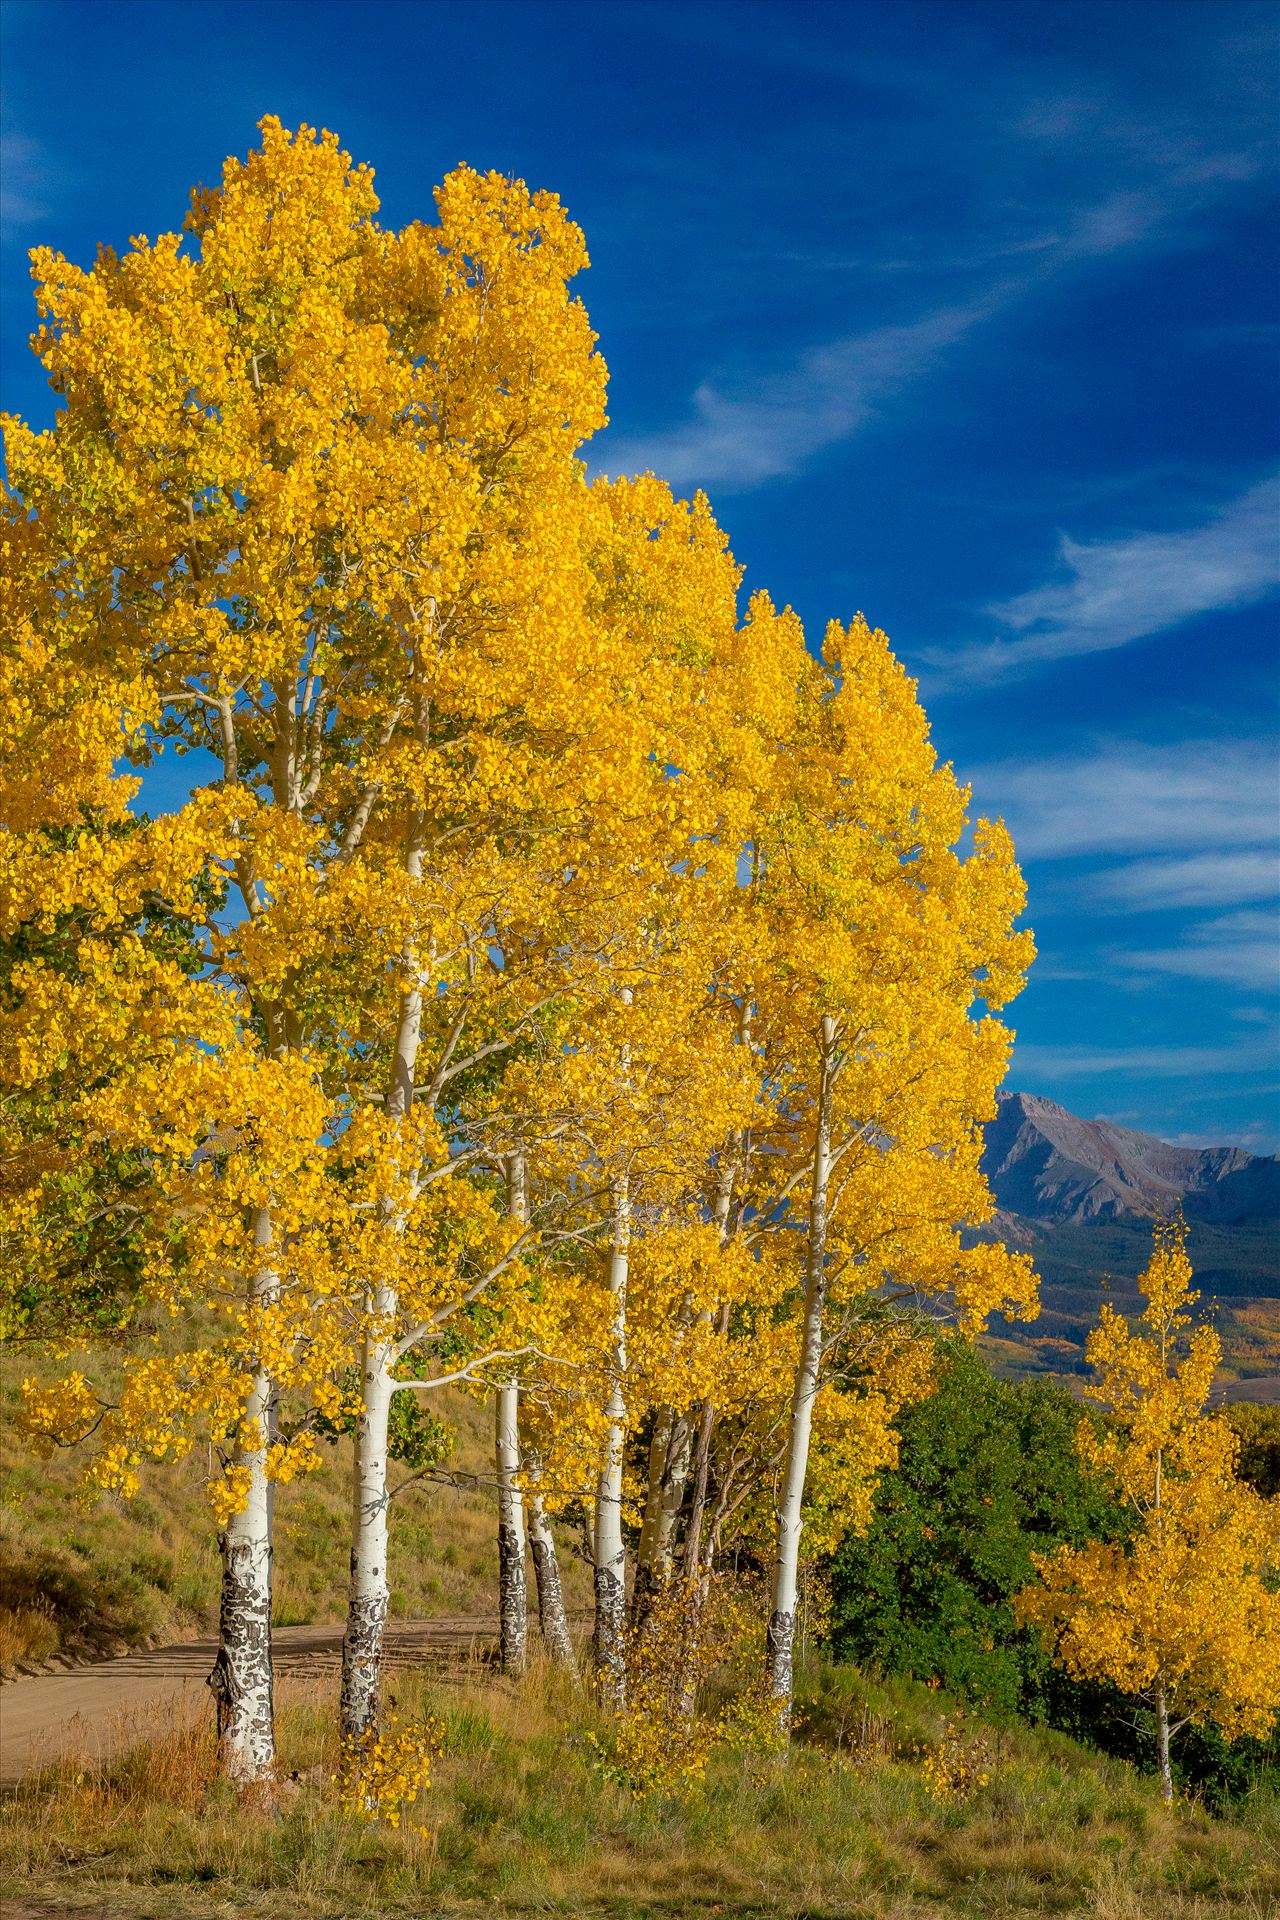 Silent Aspens - Aspens line a mountain pass on Last Dollar Road, Telluride. by D Scott Smith